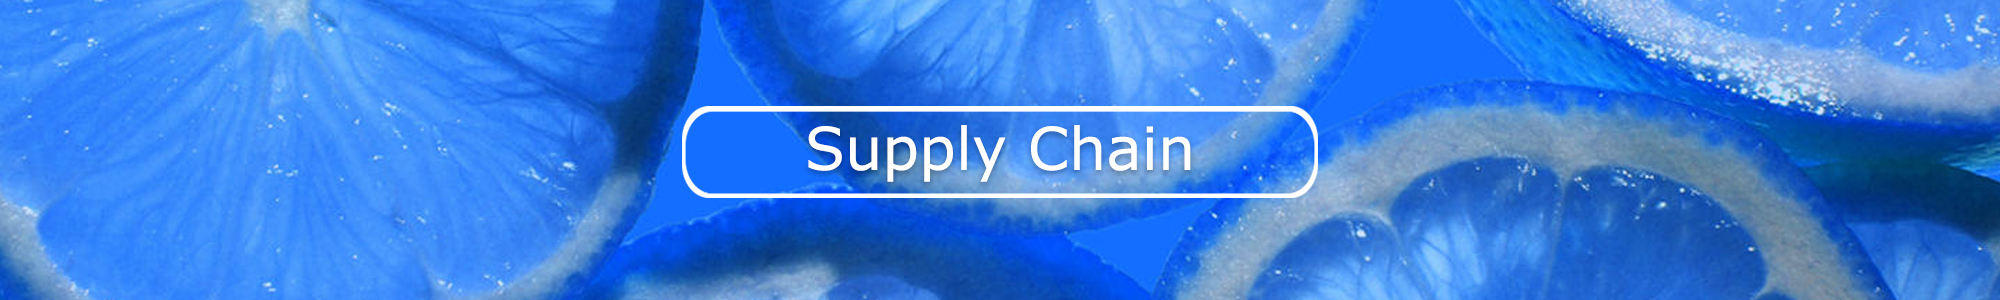 CPA Recruitment - Supply Chain Jobs